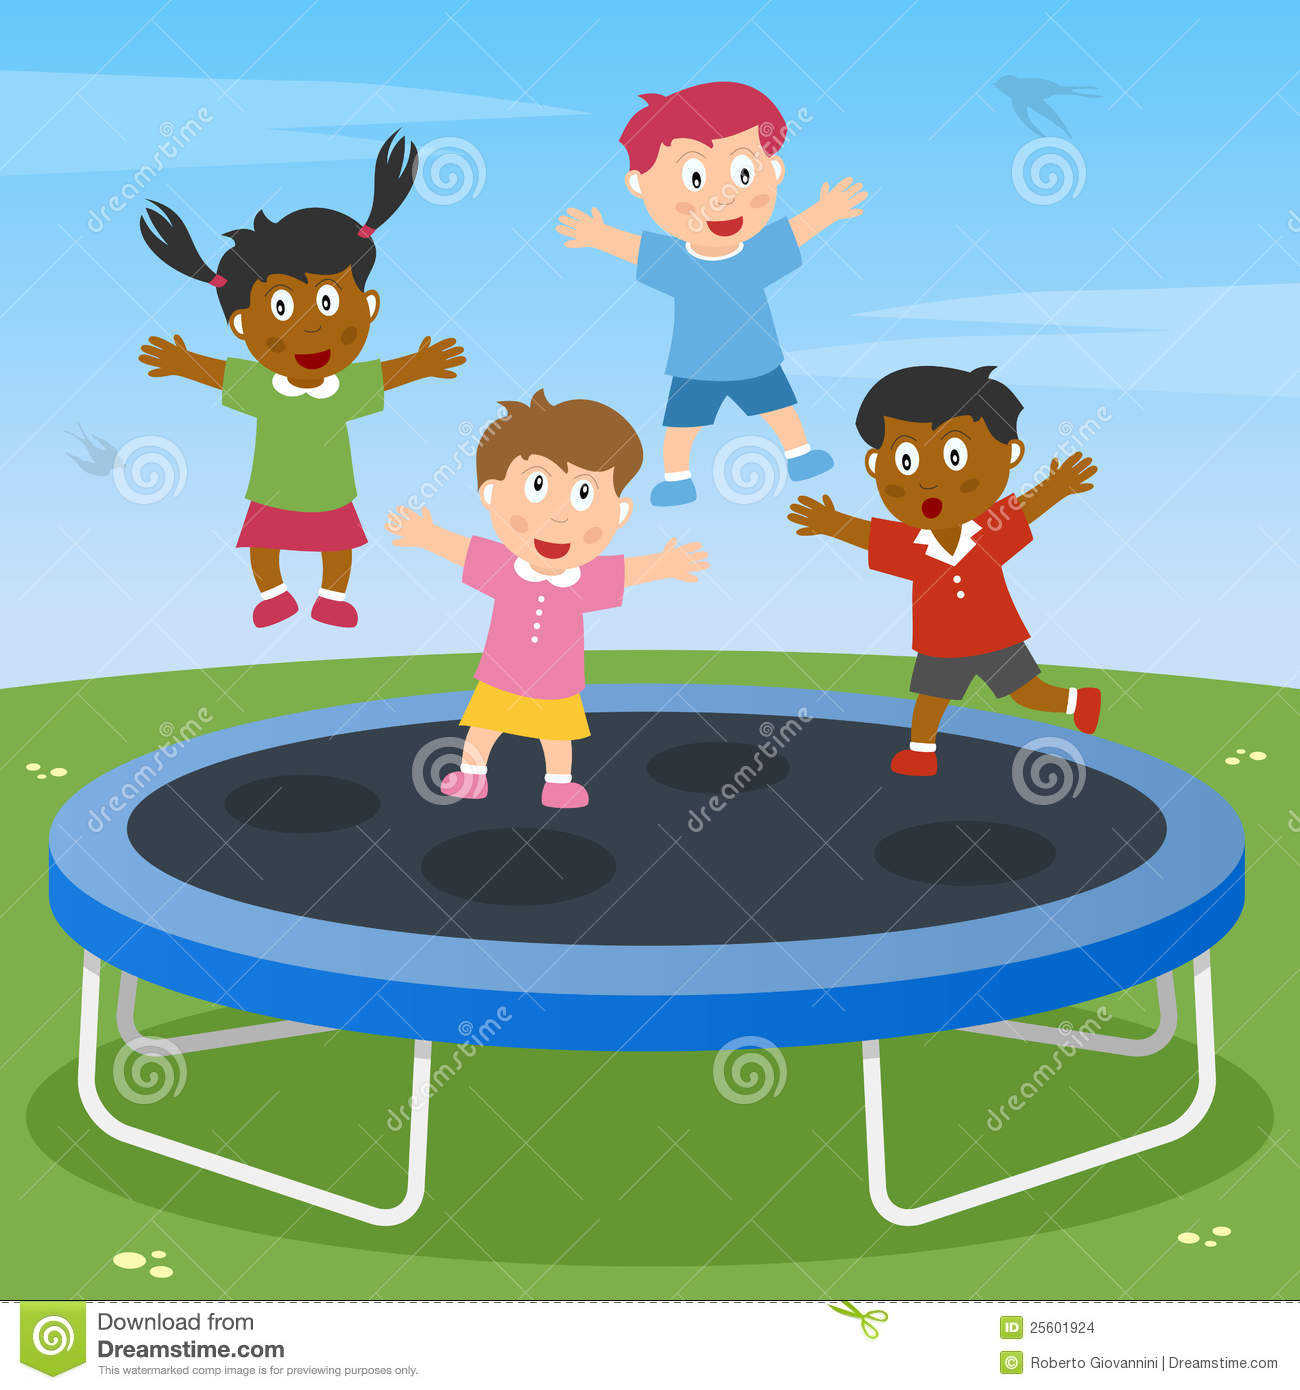 Kids Playing On Trampoline Stock Vector Illustration Of